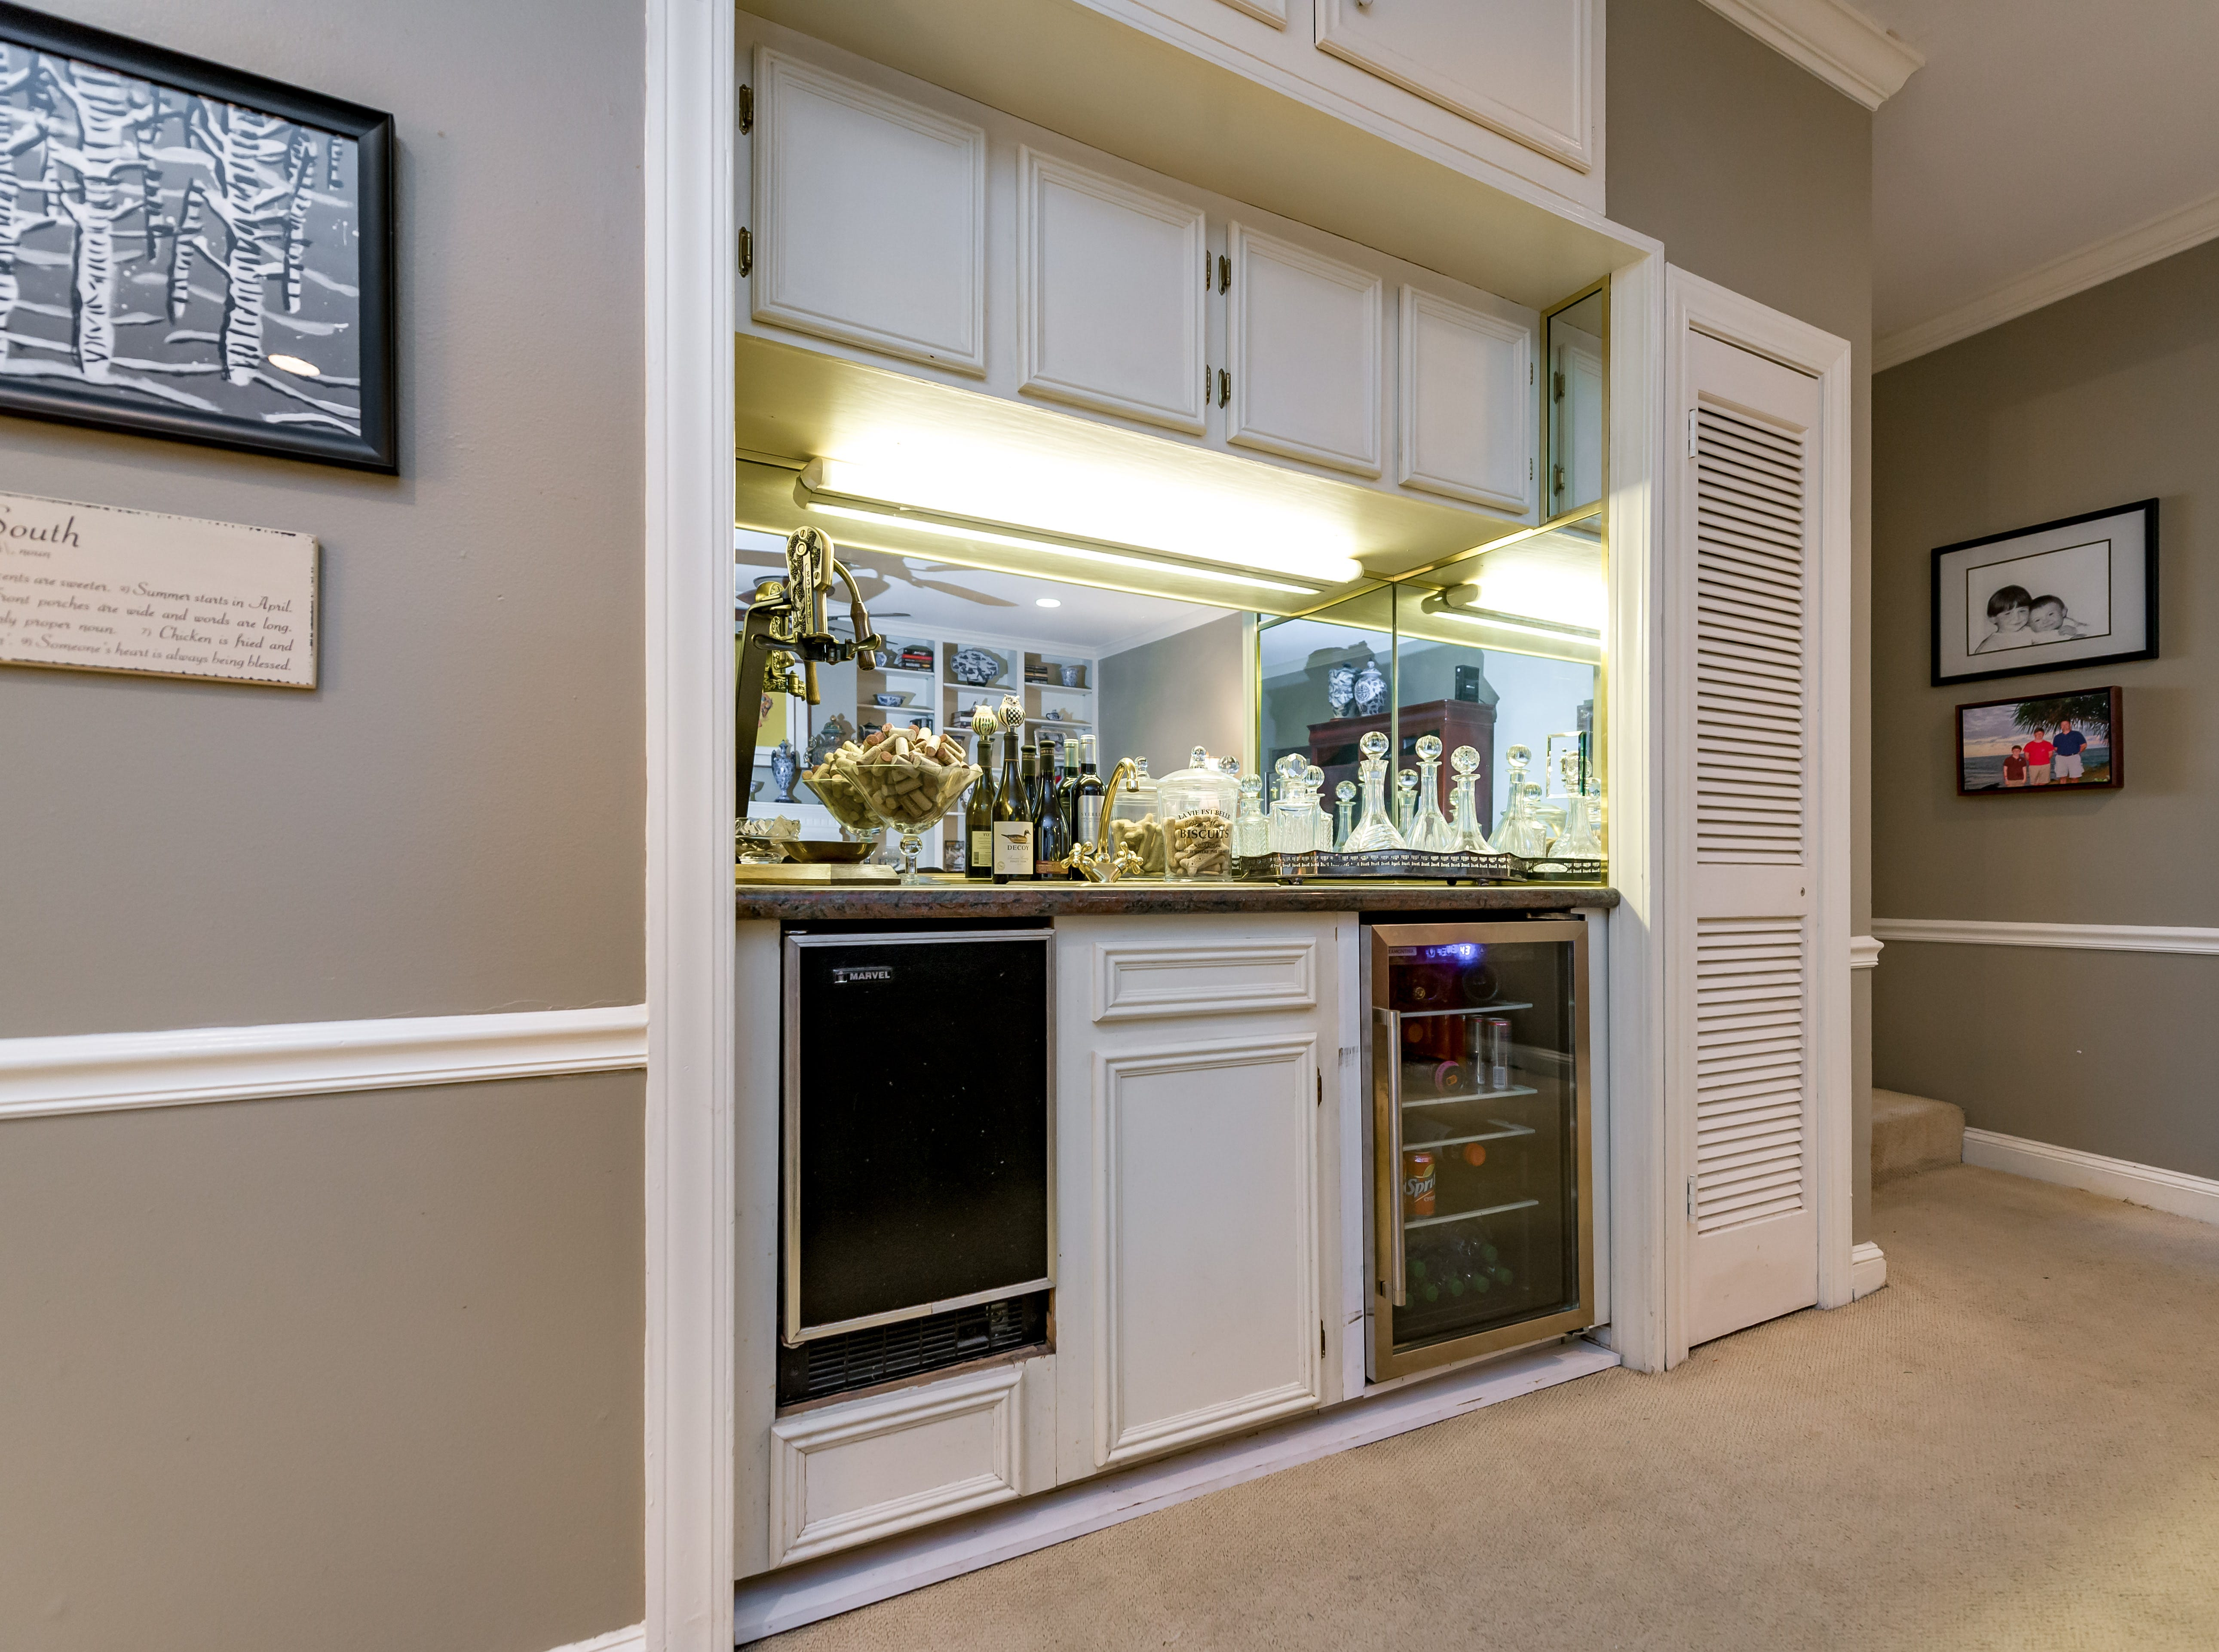 508 Wilder Place, Shreveport Price: $750,000 Details: 4 bedrooms, 4 bathrooms, 4,400 square feet Special features: Elegant historic South Highlands home, two living spaces each with a fireplace. Contact: Holly Roca, 754-7039